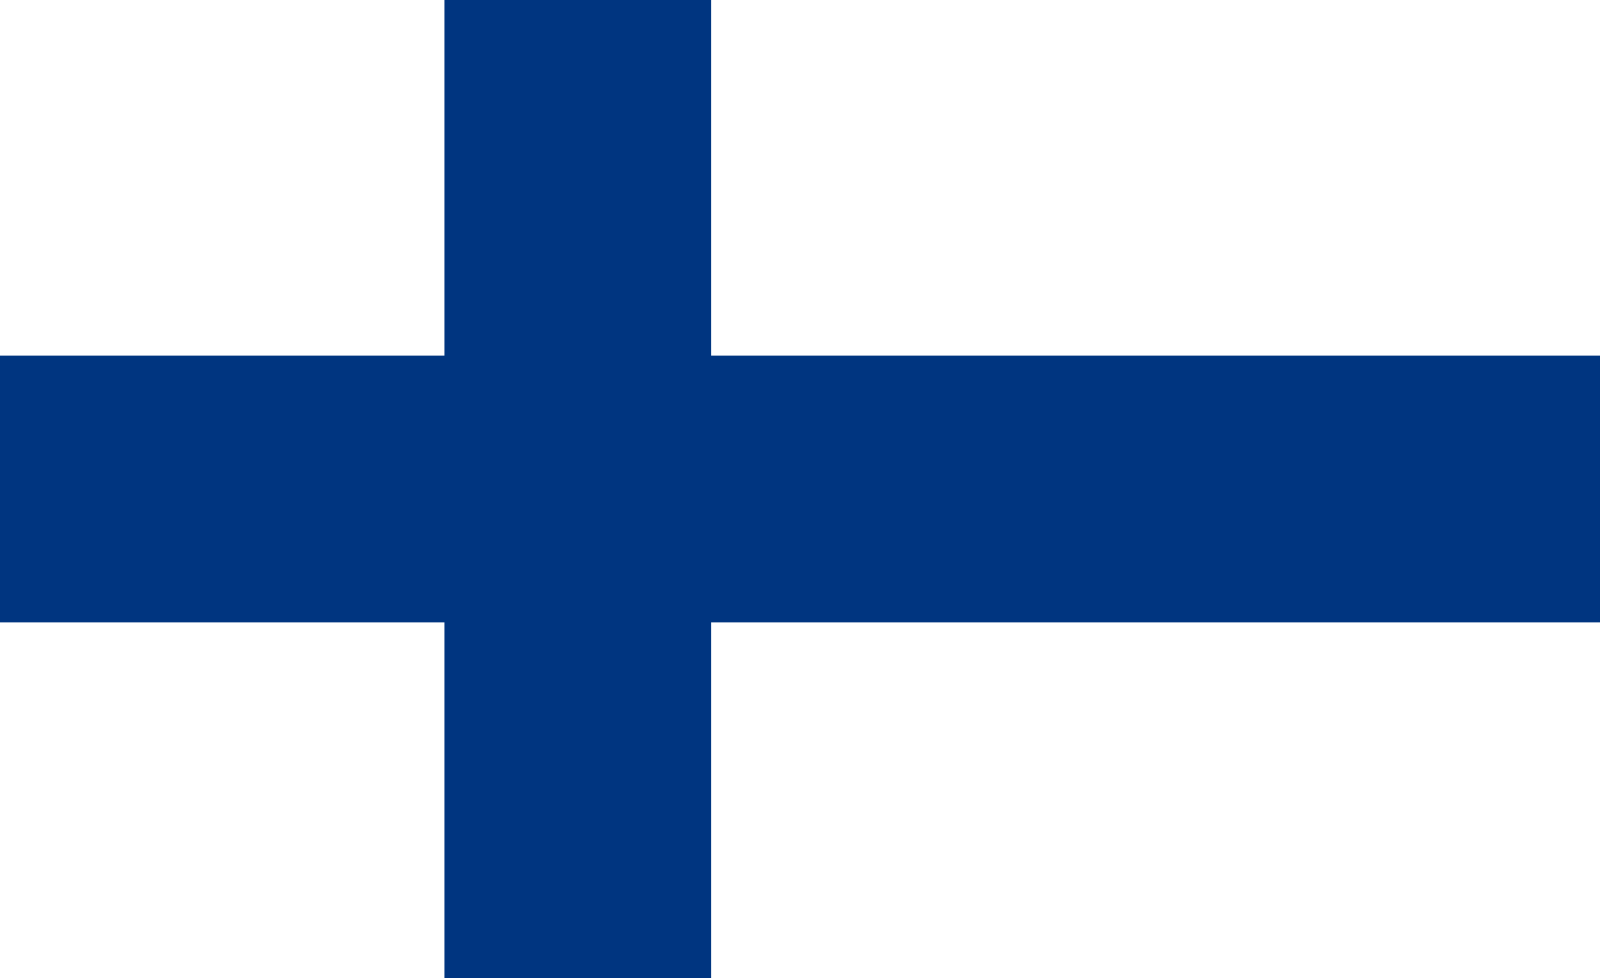 Picture of Finnish flag